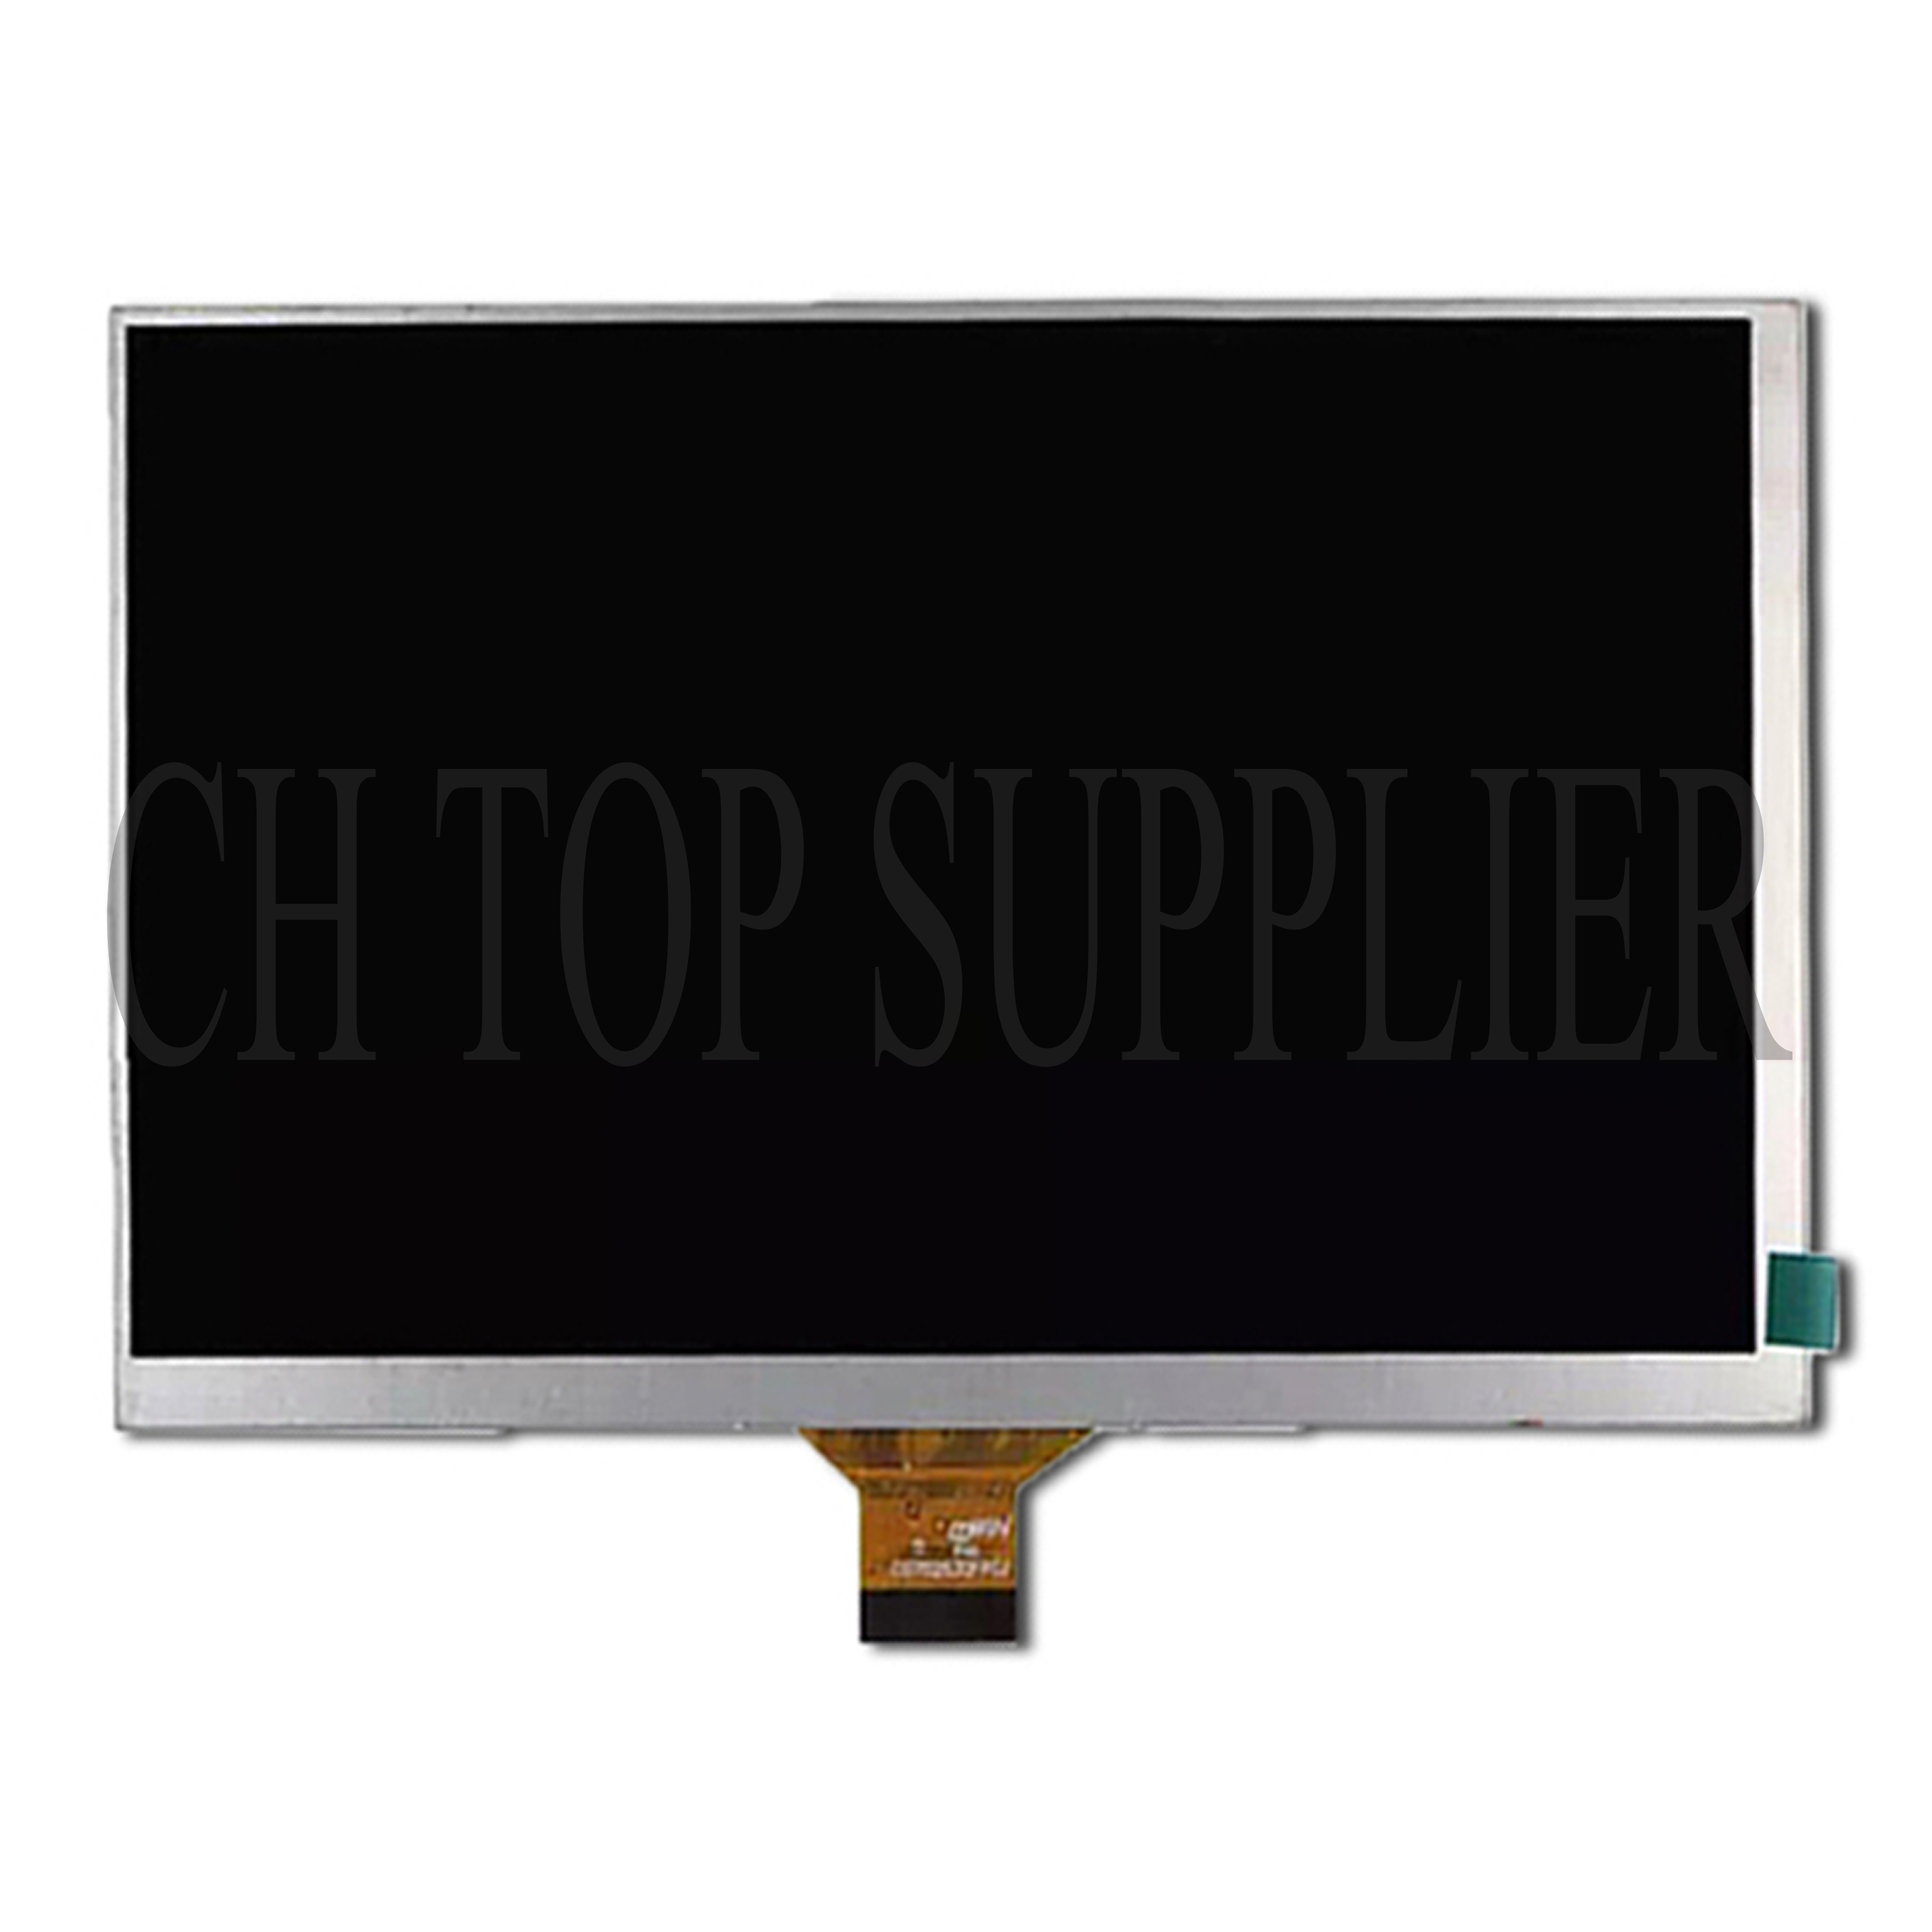 New LCD display matrix For 7 Oysters T74MRI 3G Tablet inner LCD Screen Panel Module Replacement Free Shipping new lcd display matrix for 7 teclast p70 3g tablet inner 1280x800 lcd screen panel module replacement free shipping